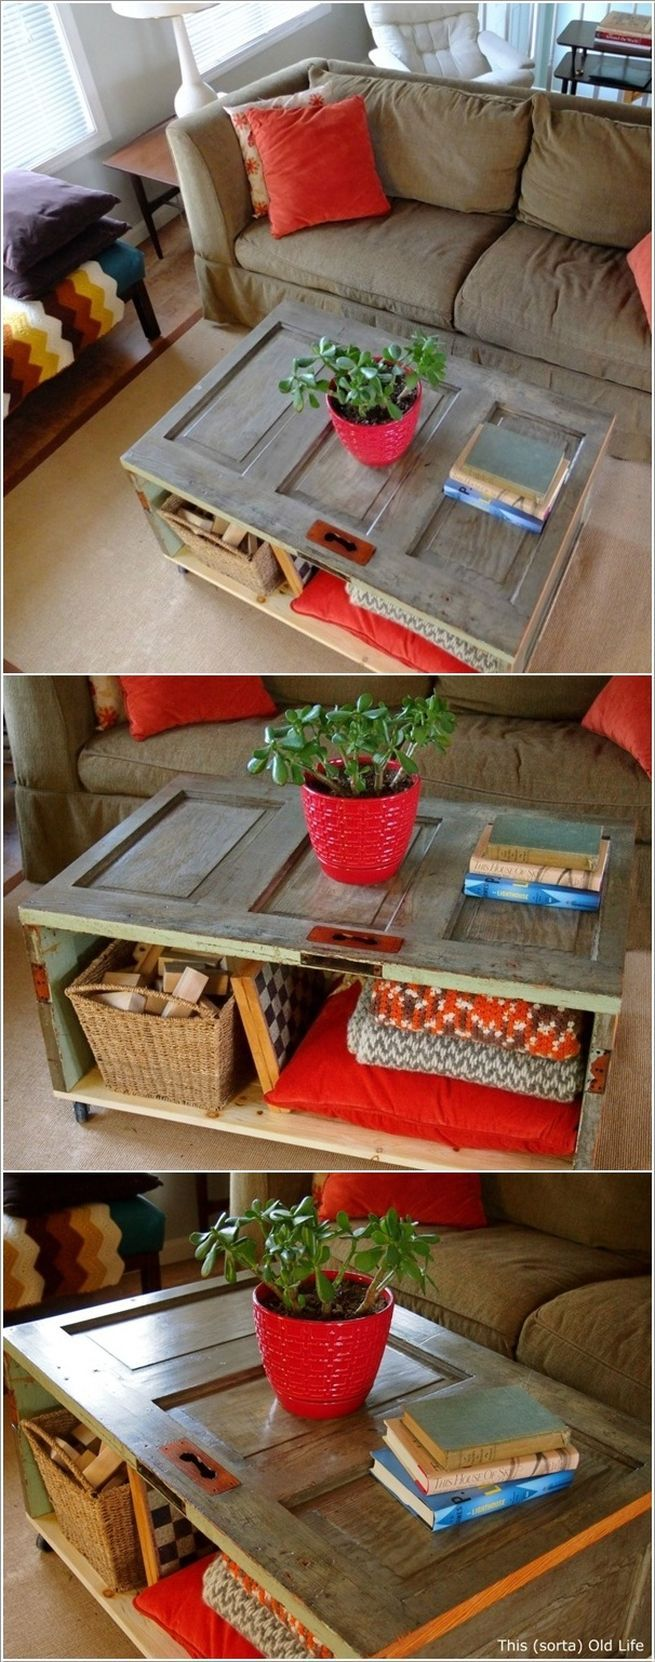 17. A Small Coffee Table Can Add Color And Contrast To Any Interior Design